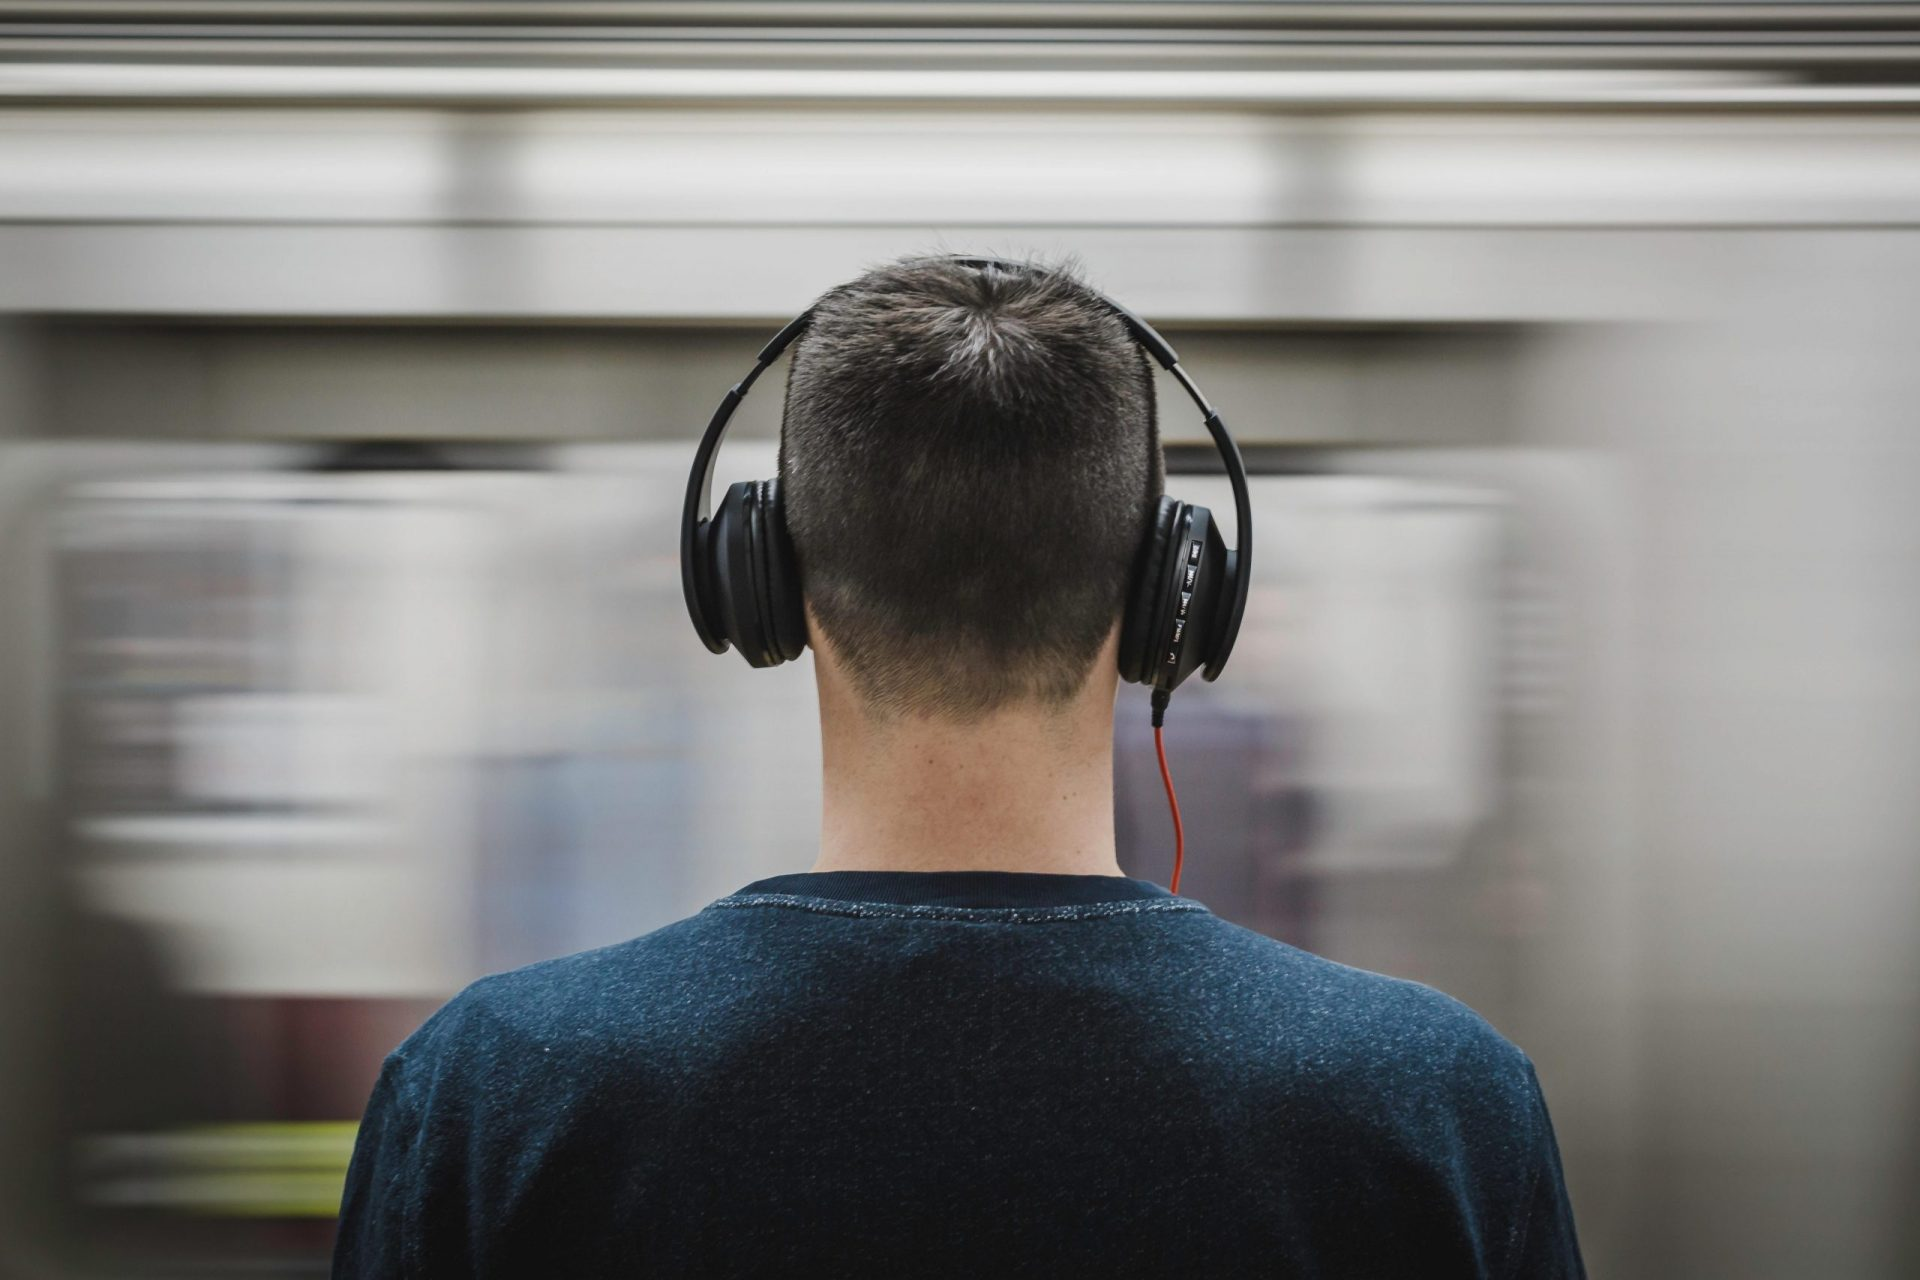 hpbyu-headphones-man-music-person-374777